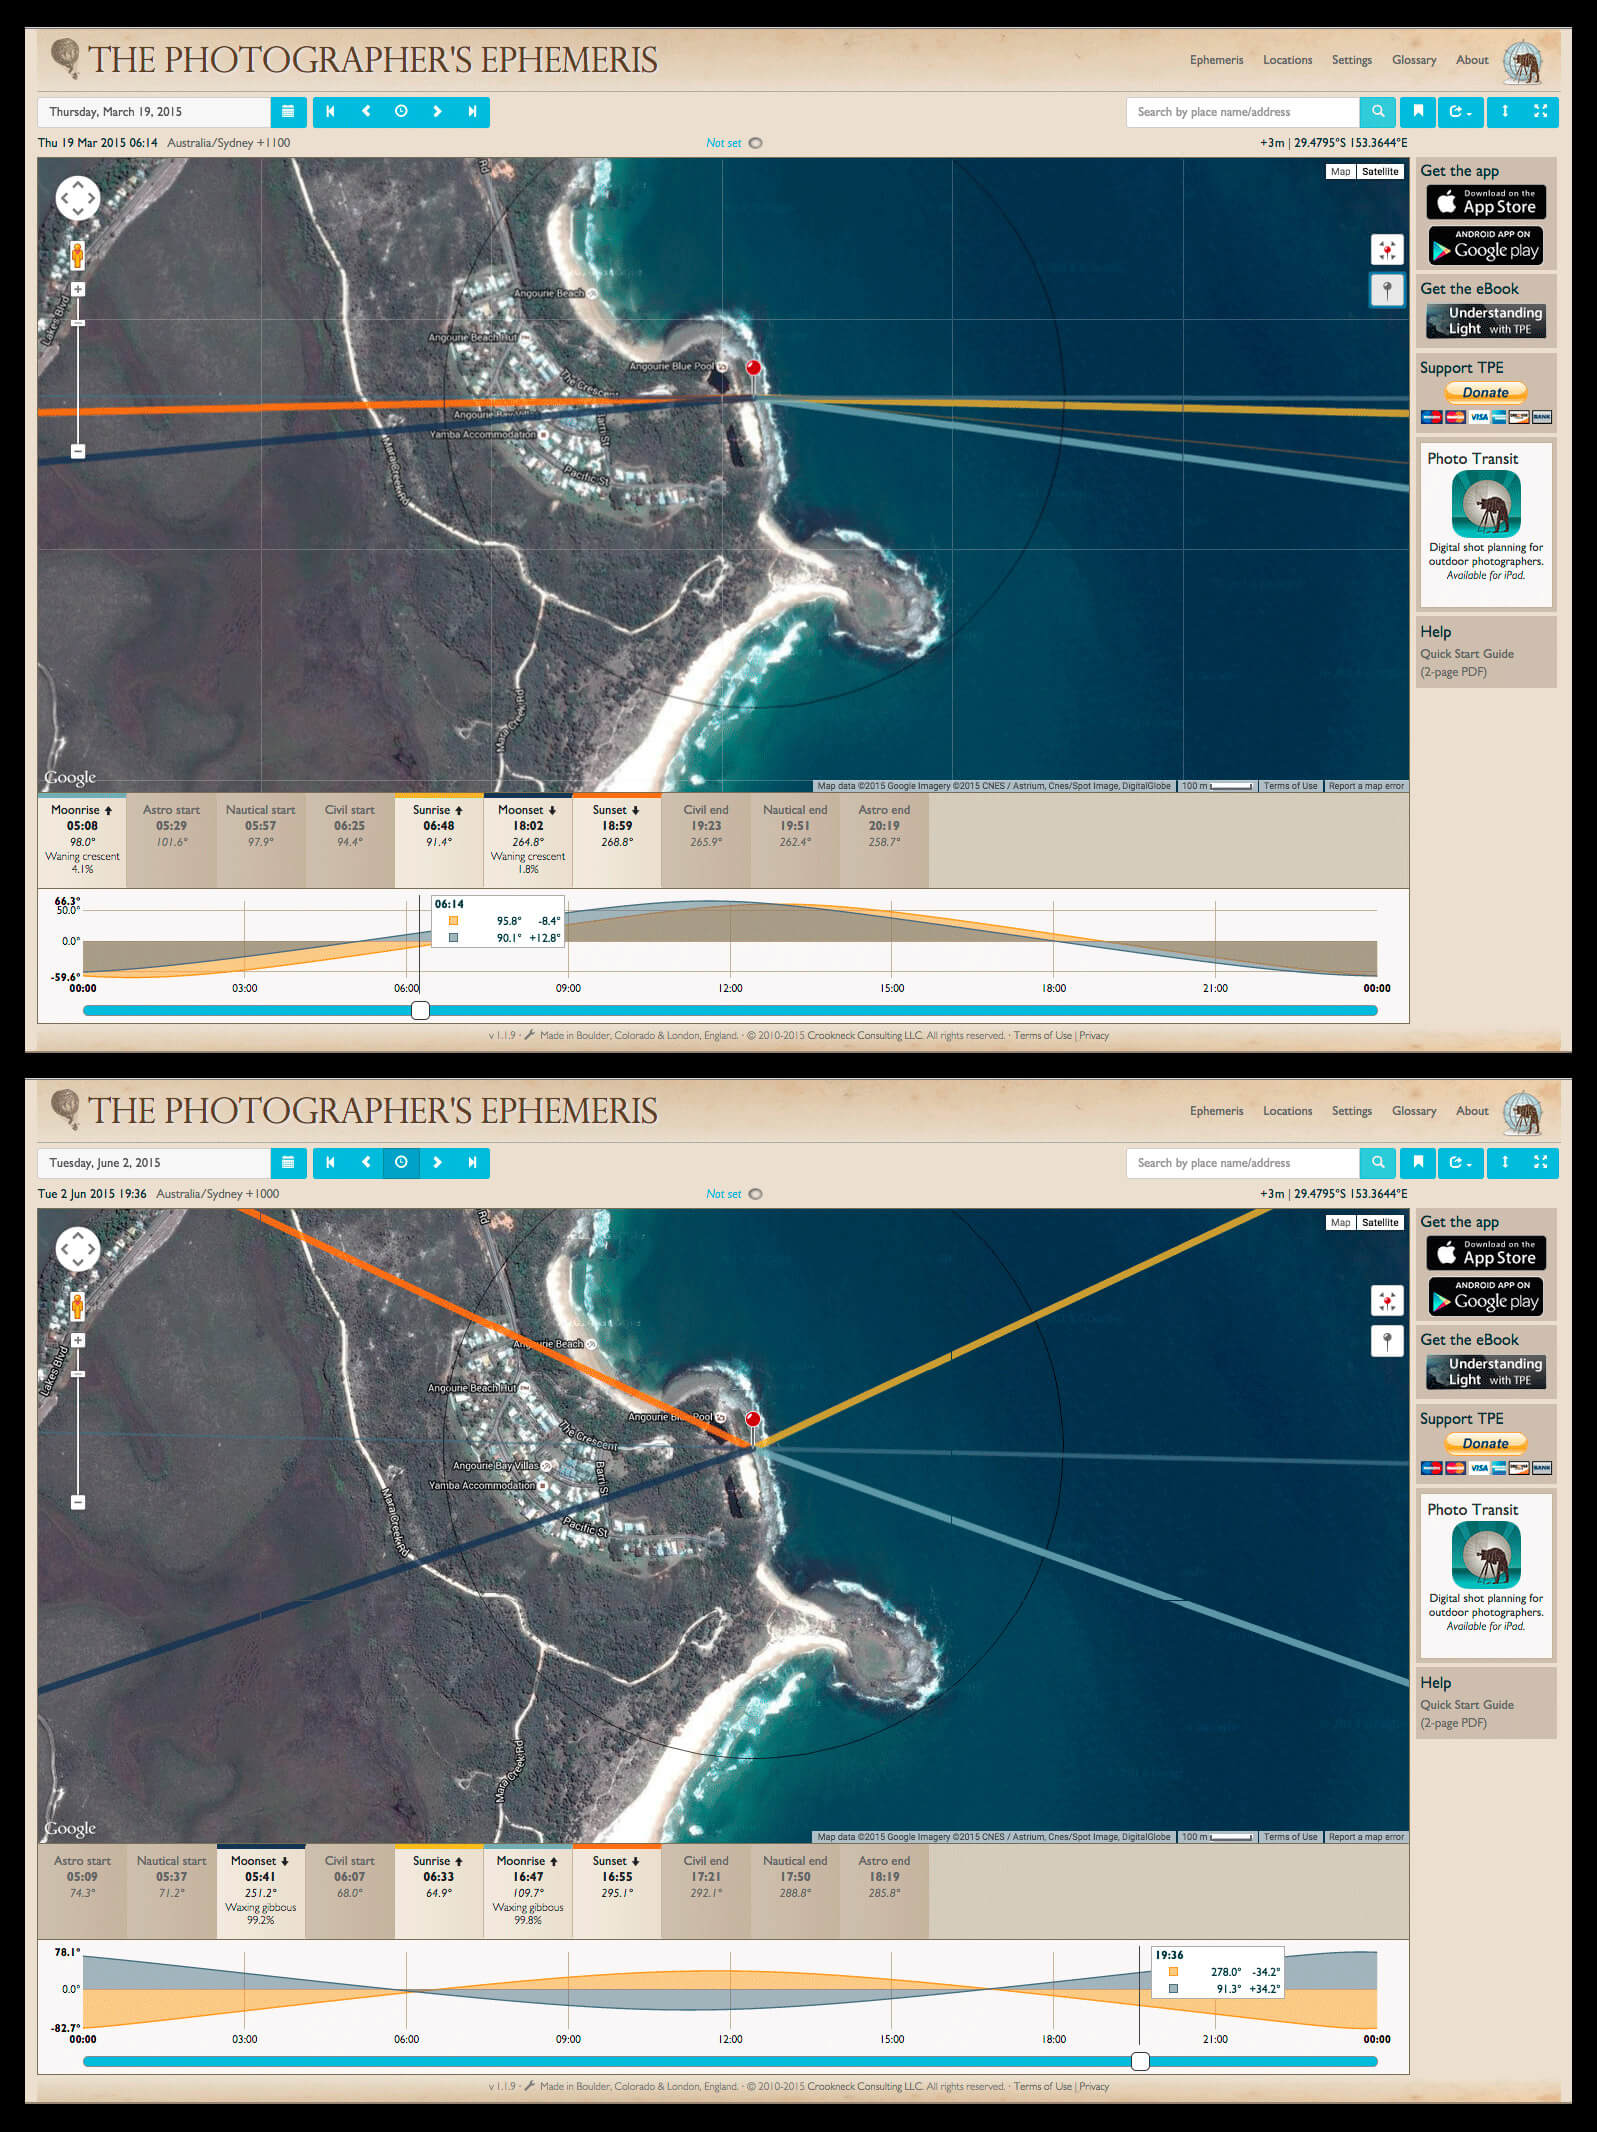 Screenshots of TPE showing the sun and moon positions on 19th March (top) and 2nd June (bottom). In the top image, the line of interest is the thin dark blue line above the yellow one which shows the moon's position at the time I have selected (06.14). In the bottom image, the light blue line towards south east shows where the moon will rise.